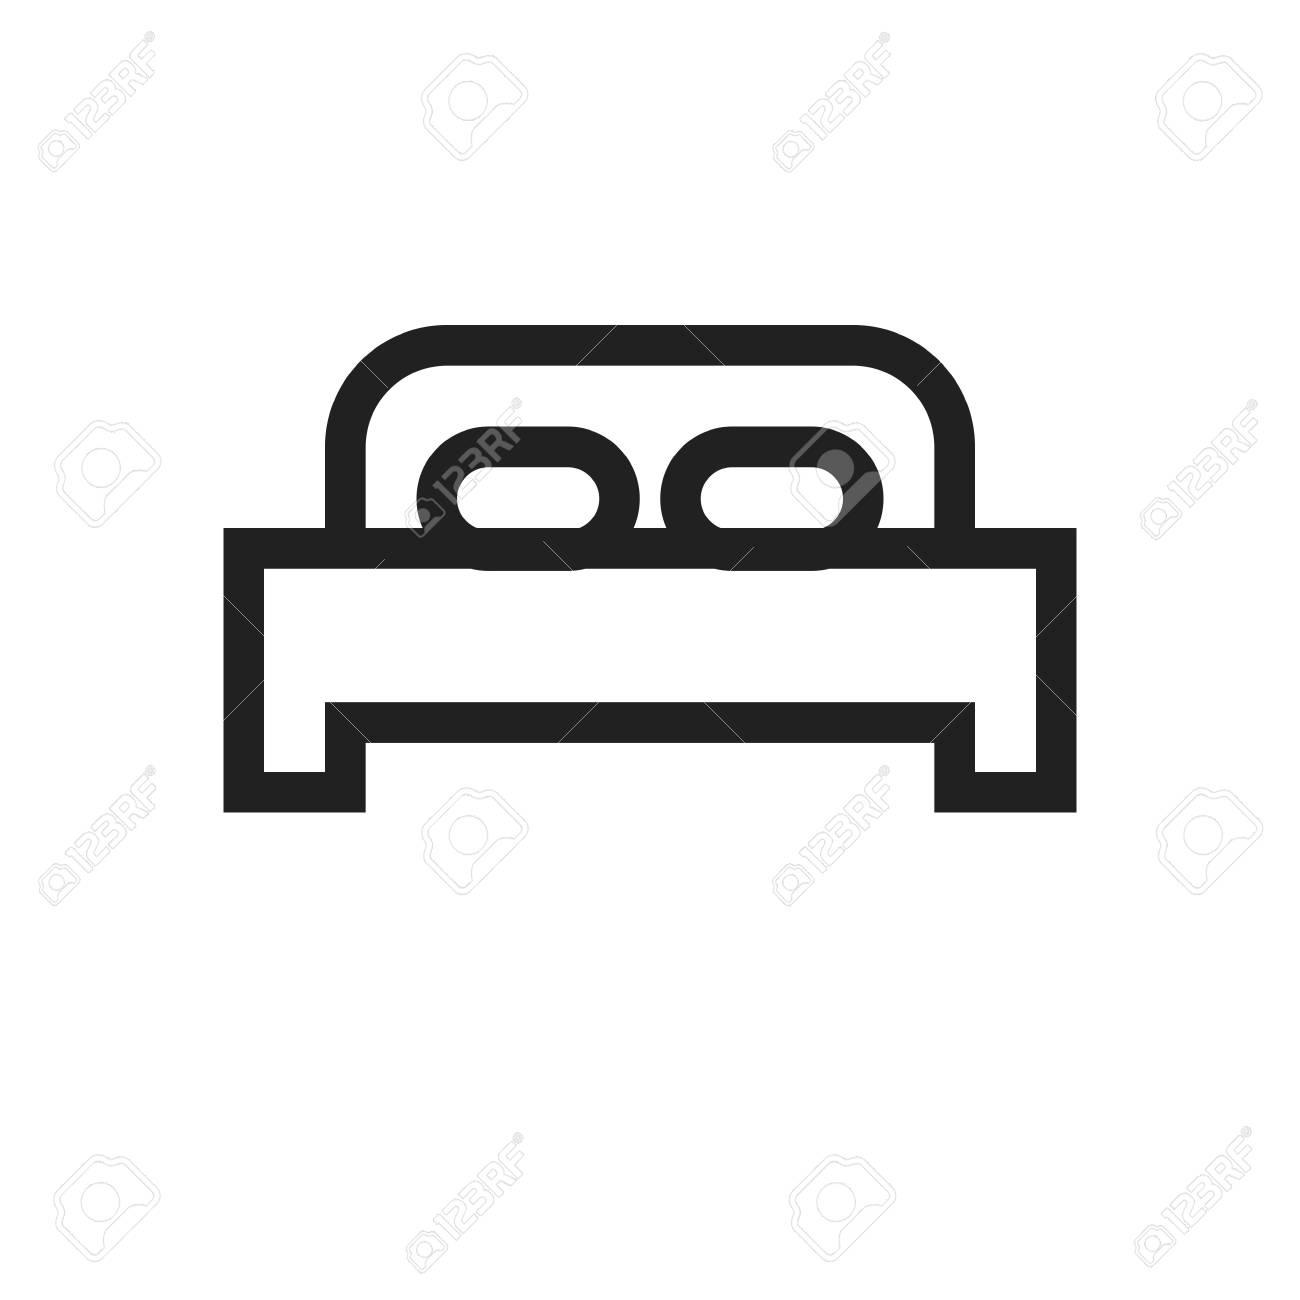 Bed Mattress Bedroom Icon Vector Image Can Also Be Used For